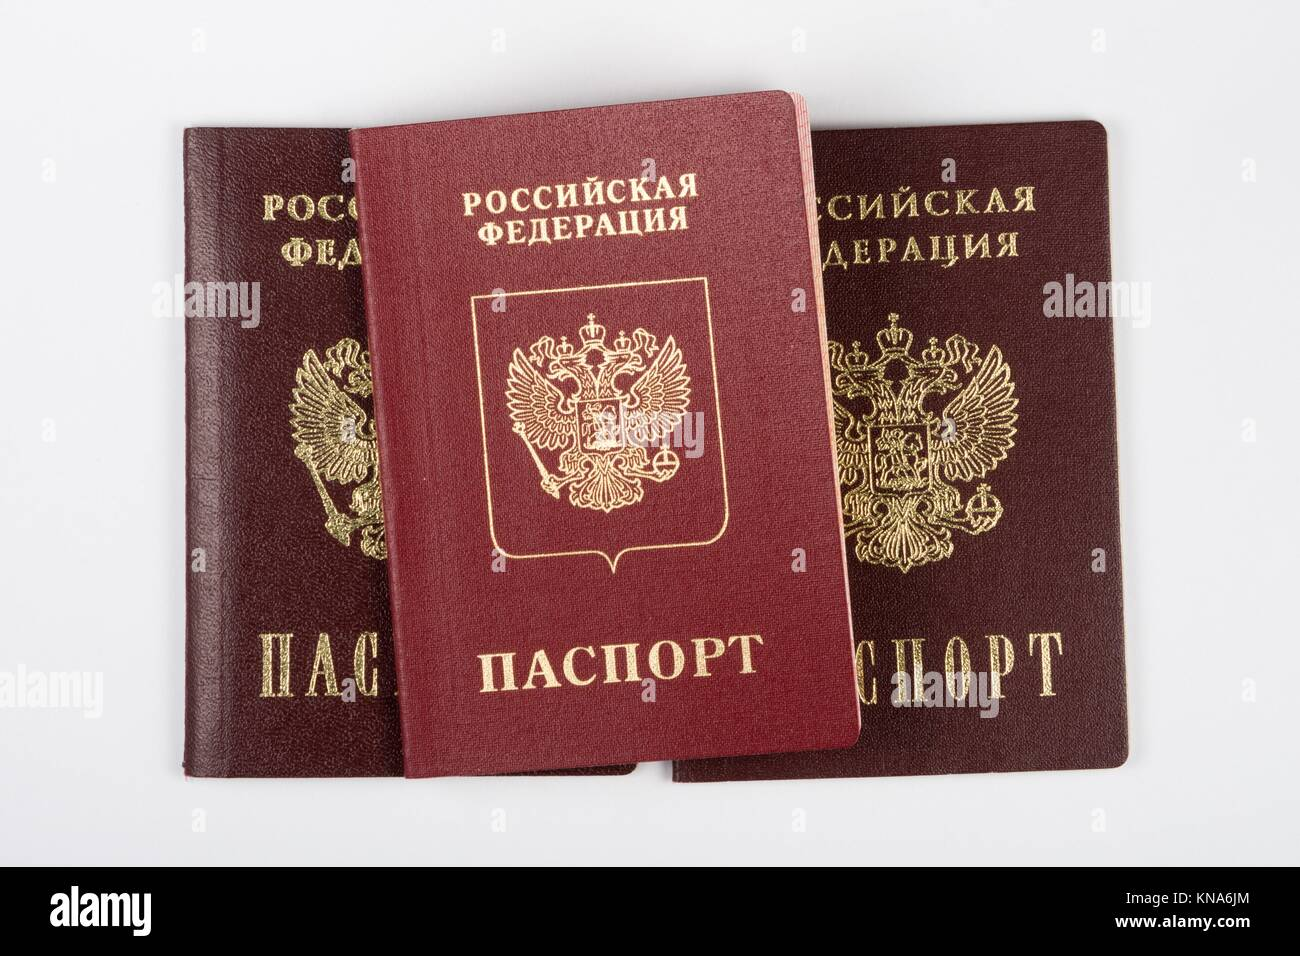 Three passport of the citizen of the Russian Federation on a white background. - Stock Image